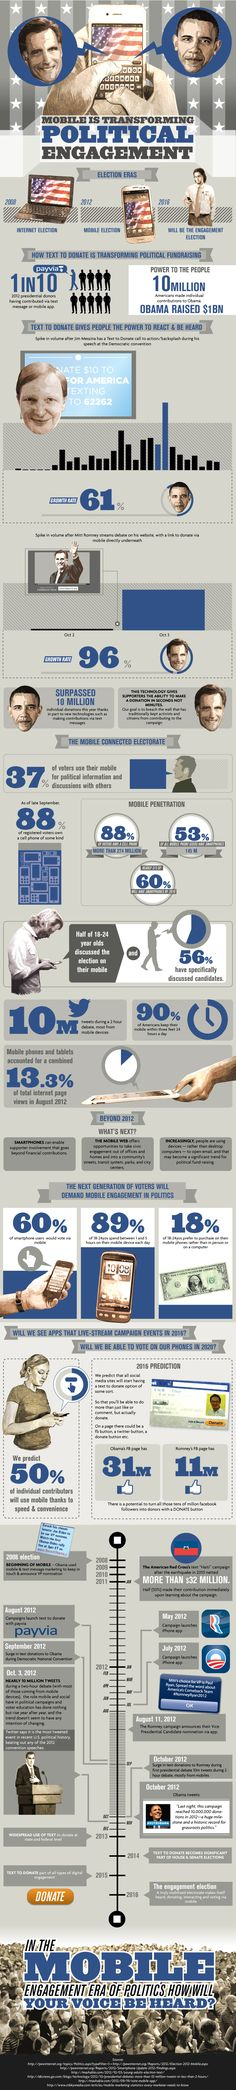 Mobiles and political engagement #infographic